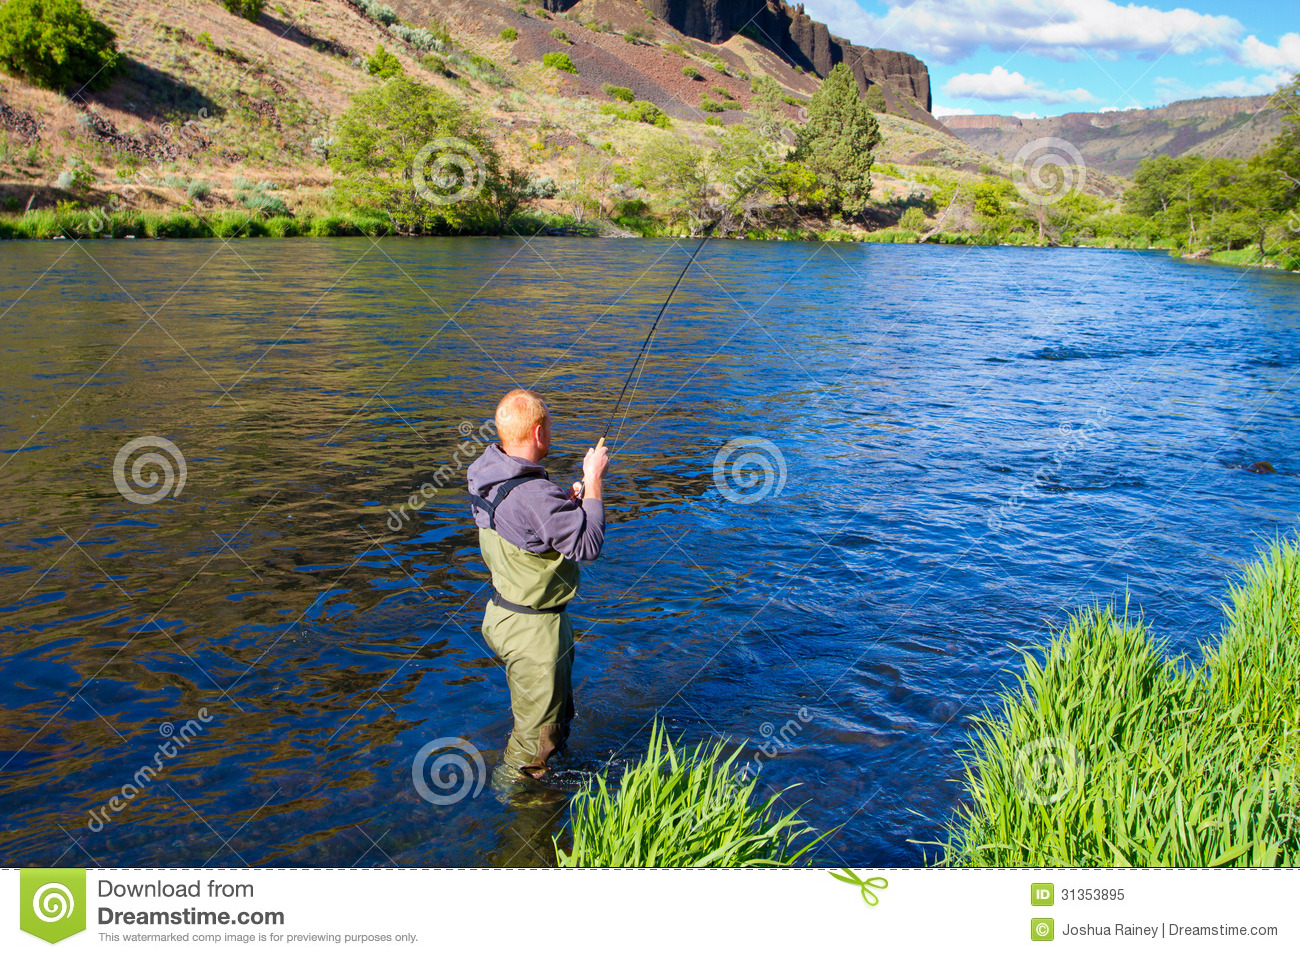 Fly fisherman deschutes river royalty free stock photo for Oregon free fishing